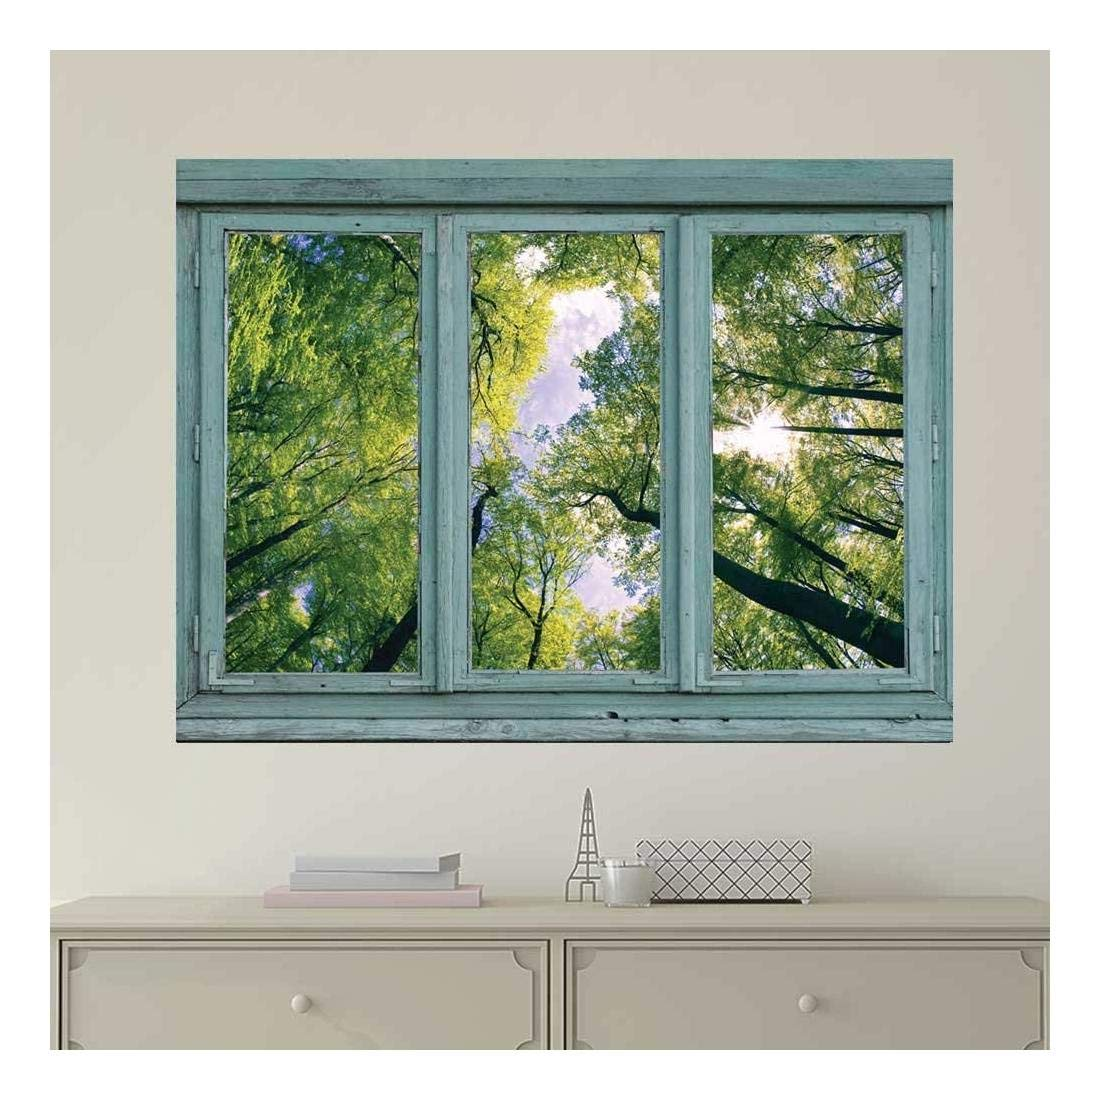 wall26 Vintage Teal Window Looking Out Into a Green Forest and the Sky - Wall Mural, Removable Sticker, Home Decor - 24x32 inches